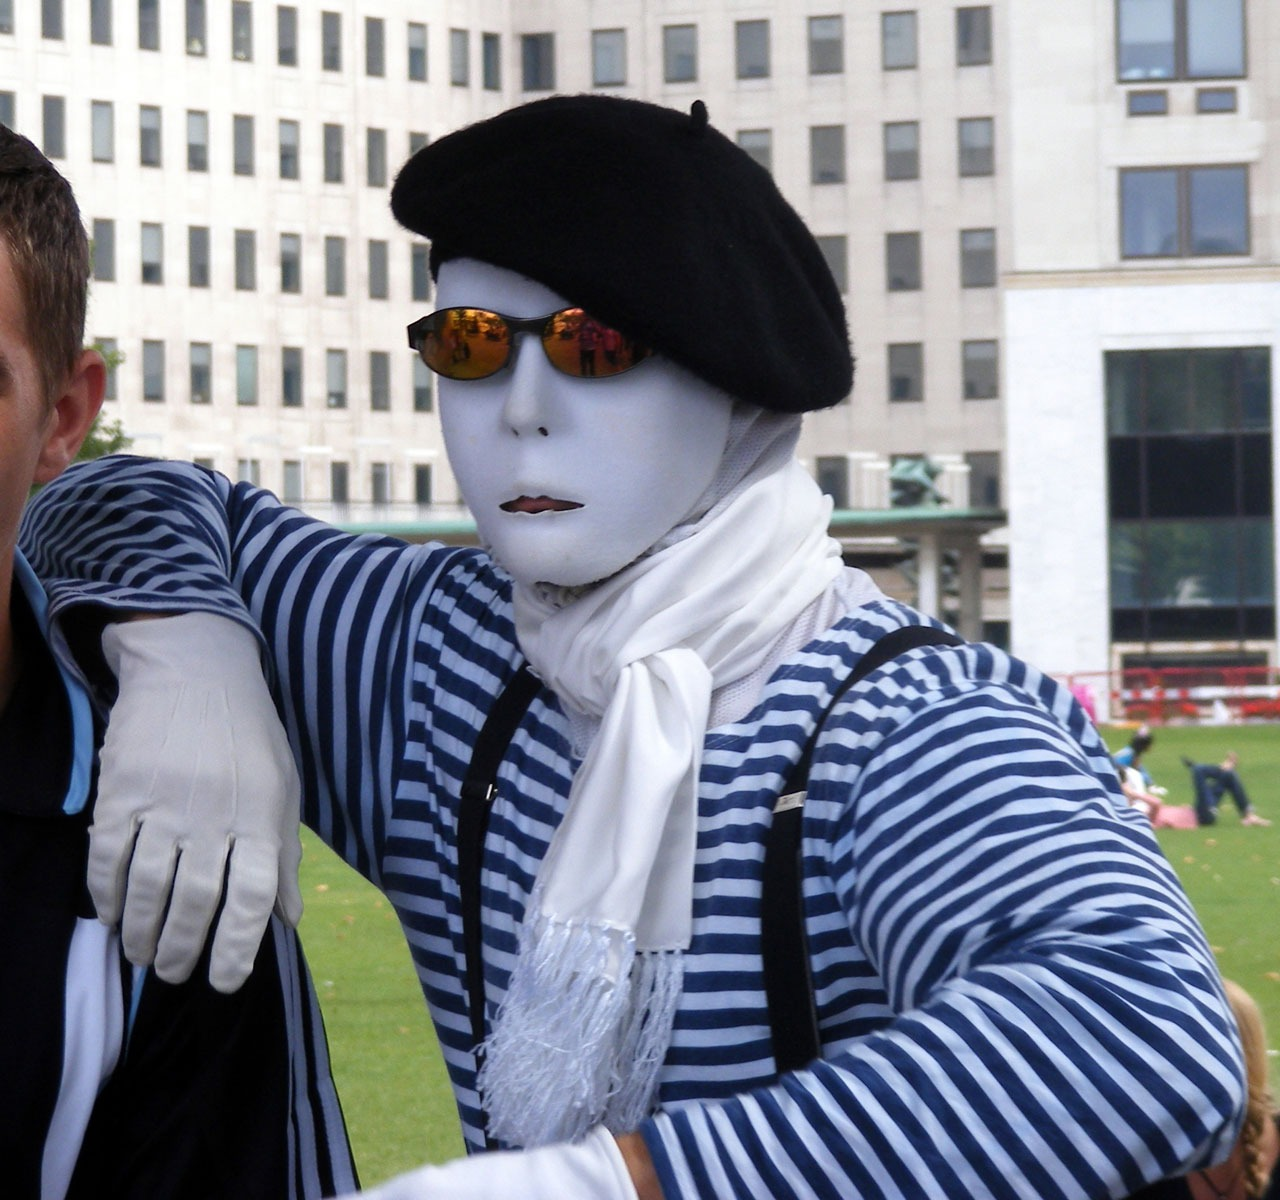 Mime as a street artist free image download